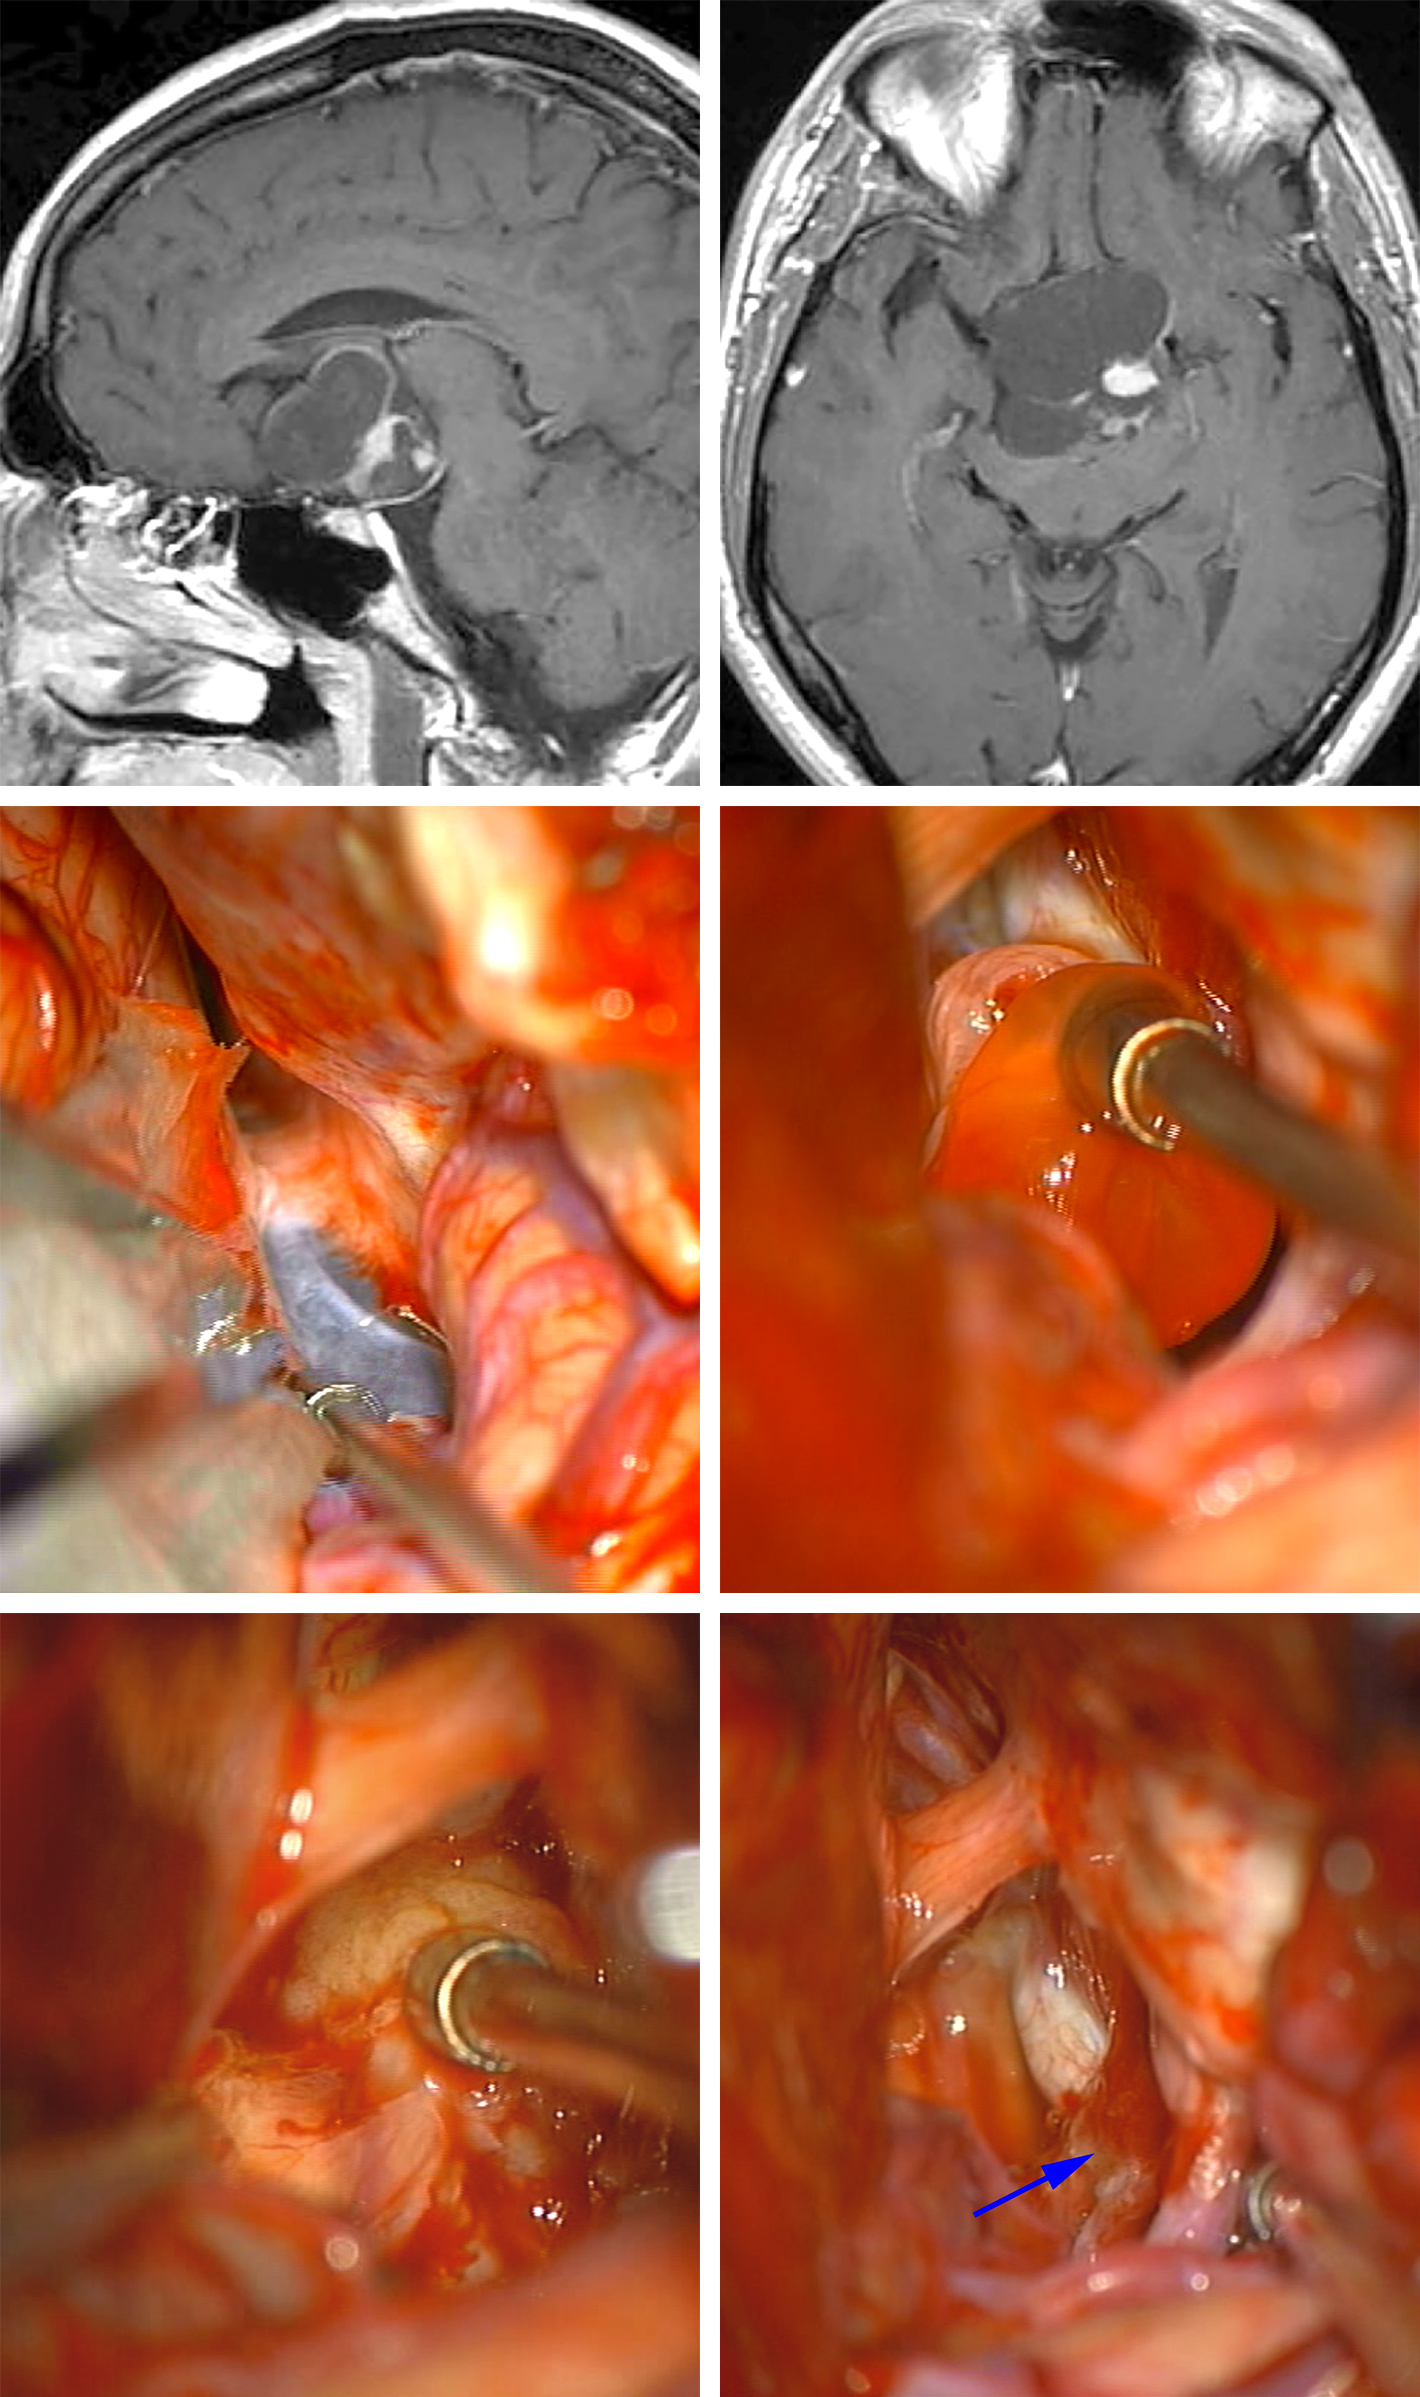 Figure 8: An anterochiasmatic cystic craniopharyngioma (first row of images) was resected via the pterional craniotomy. The ipsilateral optic nerve was decompressed via drainage of the cyst, and the capsule of the cystic components of the tumor was removed (middle row of images). The tumor nodule was sharply released from the hypothalamus (left lower image). The final resection result and the subfrontal operative trajectory are shown. The pituitary stalk (arrow) remained intact (right lower image).